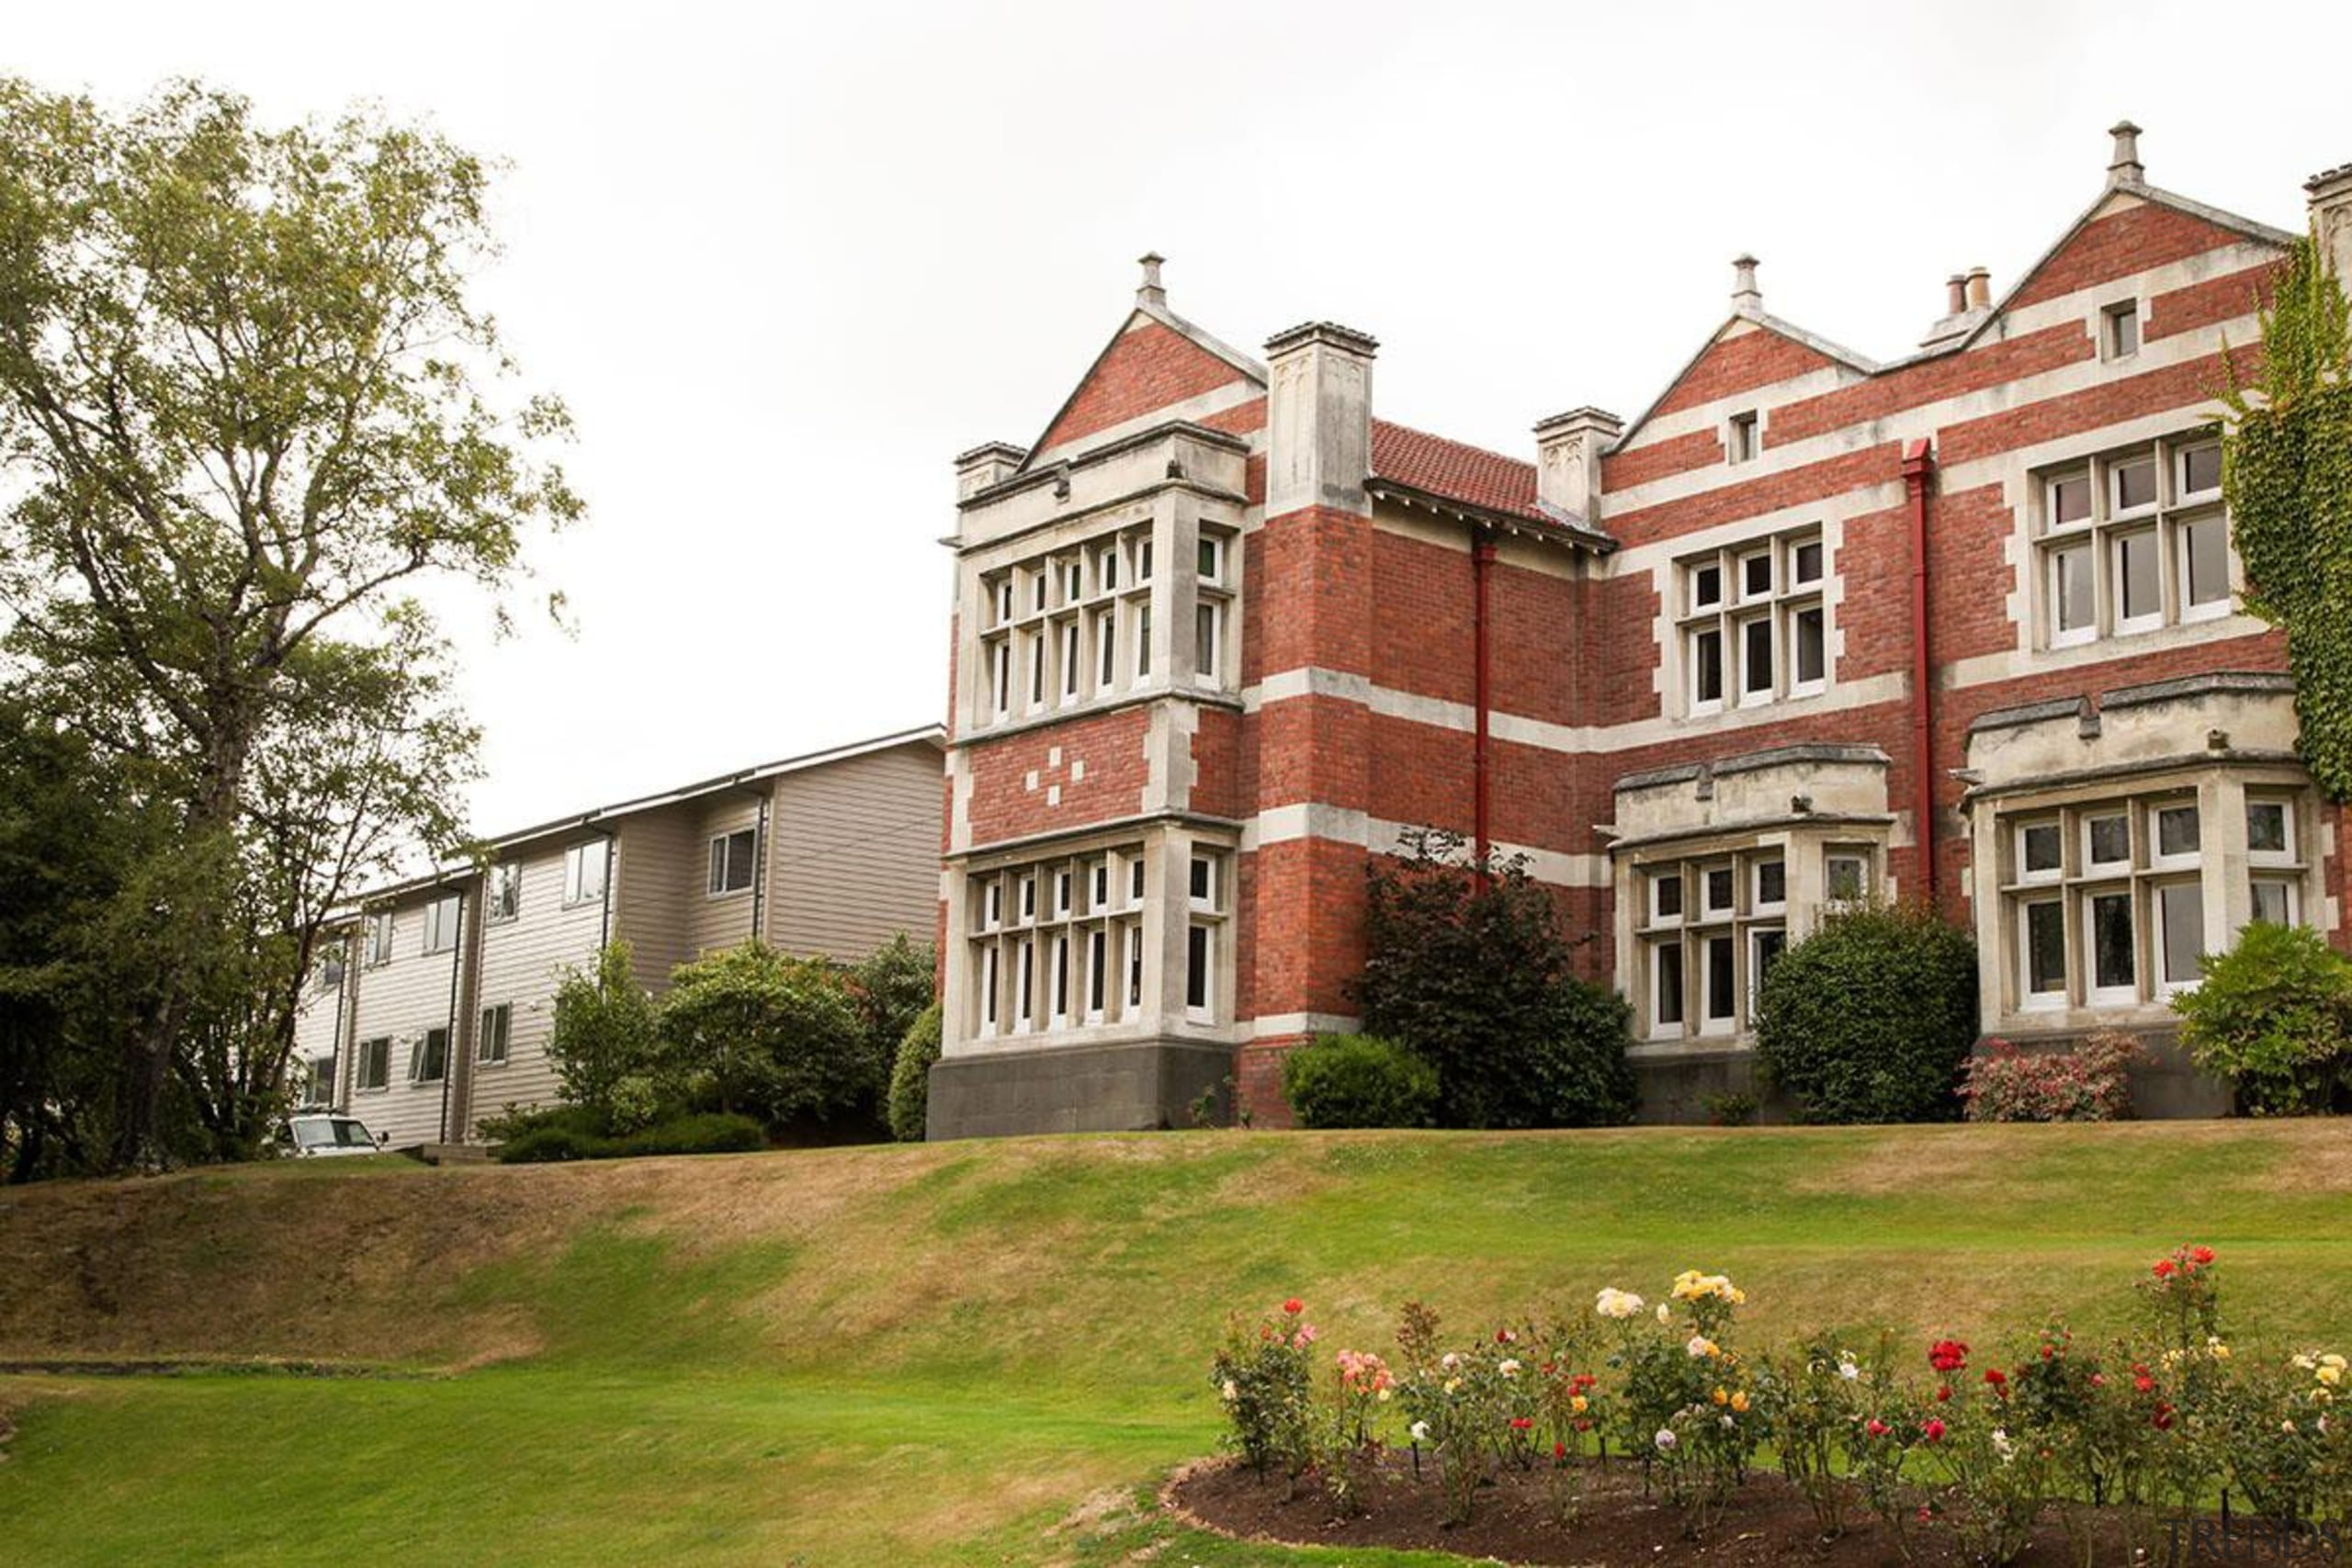 MERIT WINNERKnox College - Dunedin (2 of 4) building, campus, college, estate, facade, historic house, home, house, manor house, mansion, national trust for places of historic interest or natural beauty, property, real estate, stately home, tree, university, brown, white